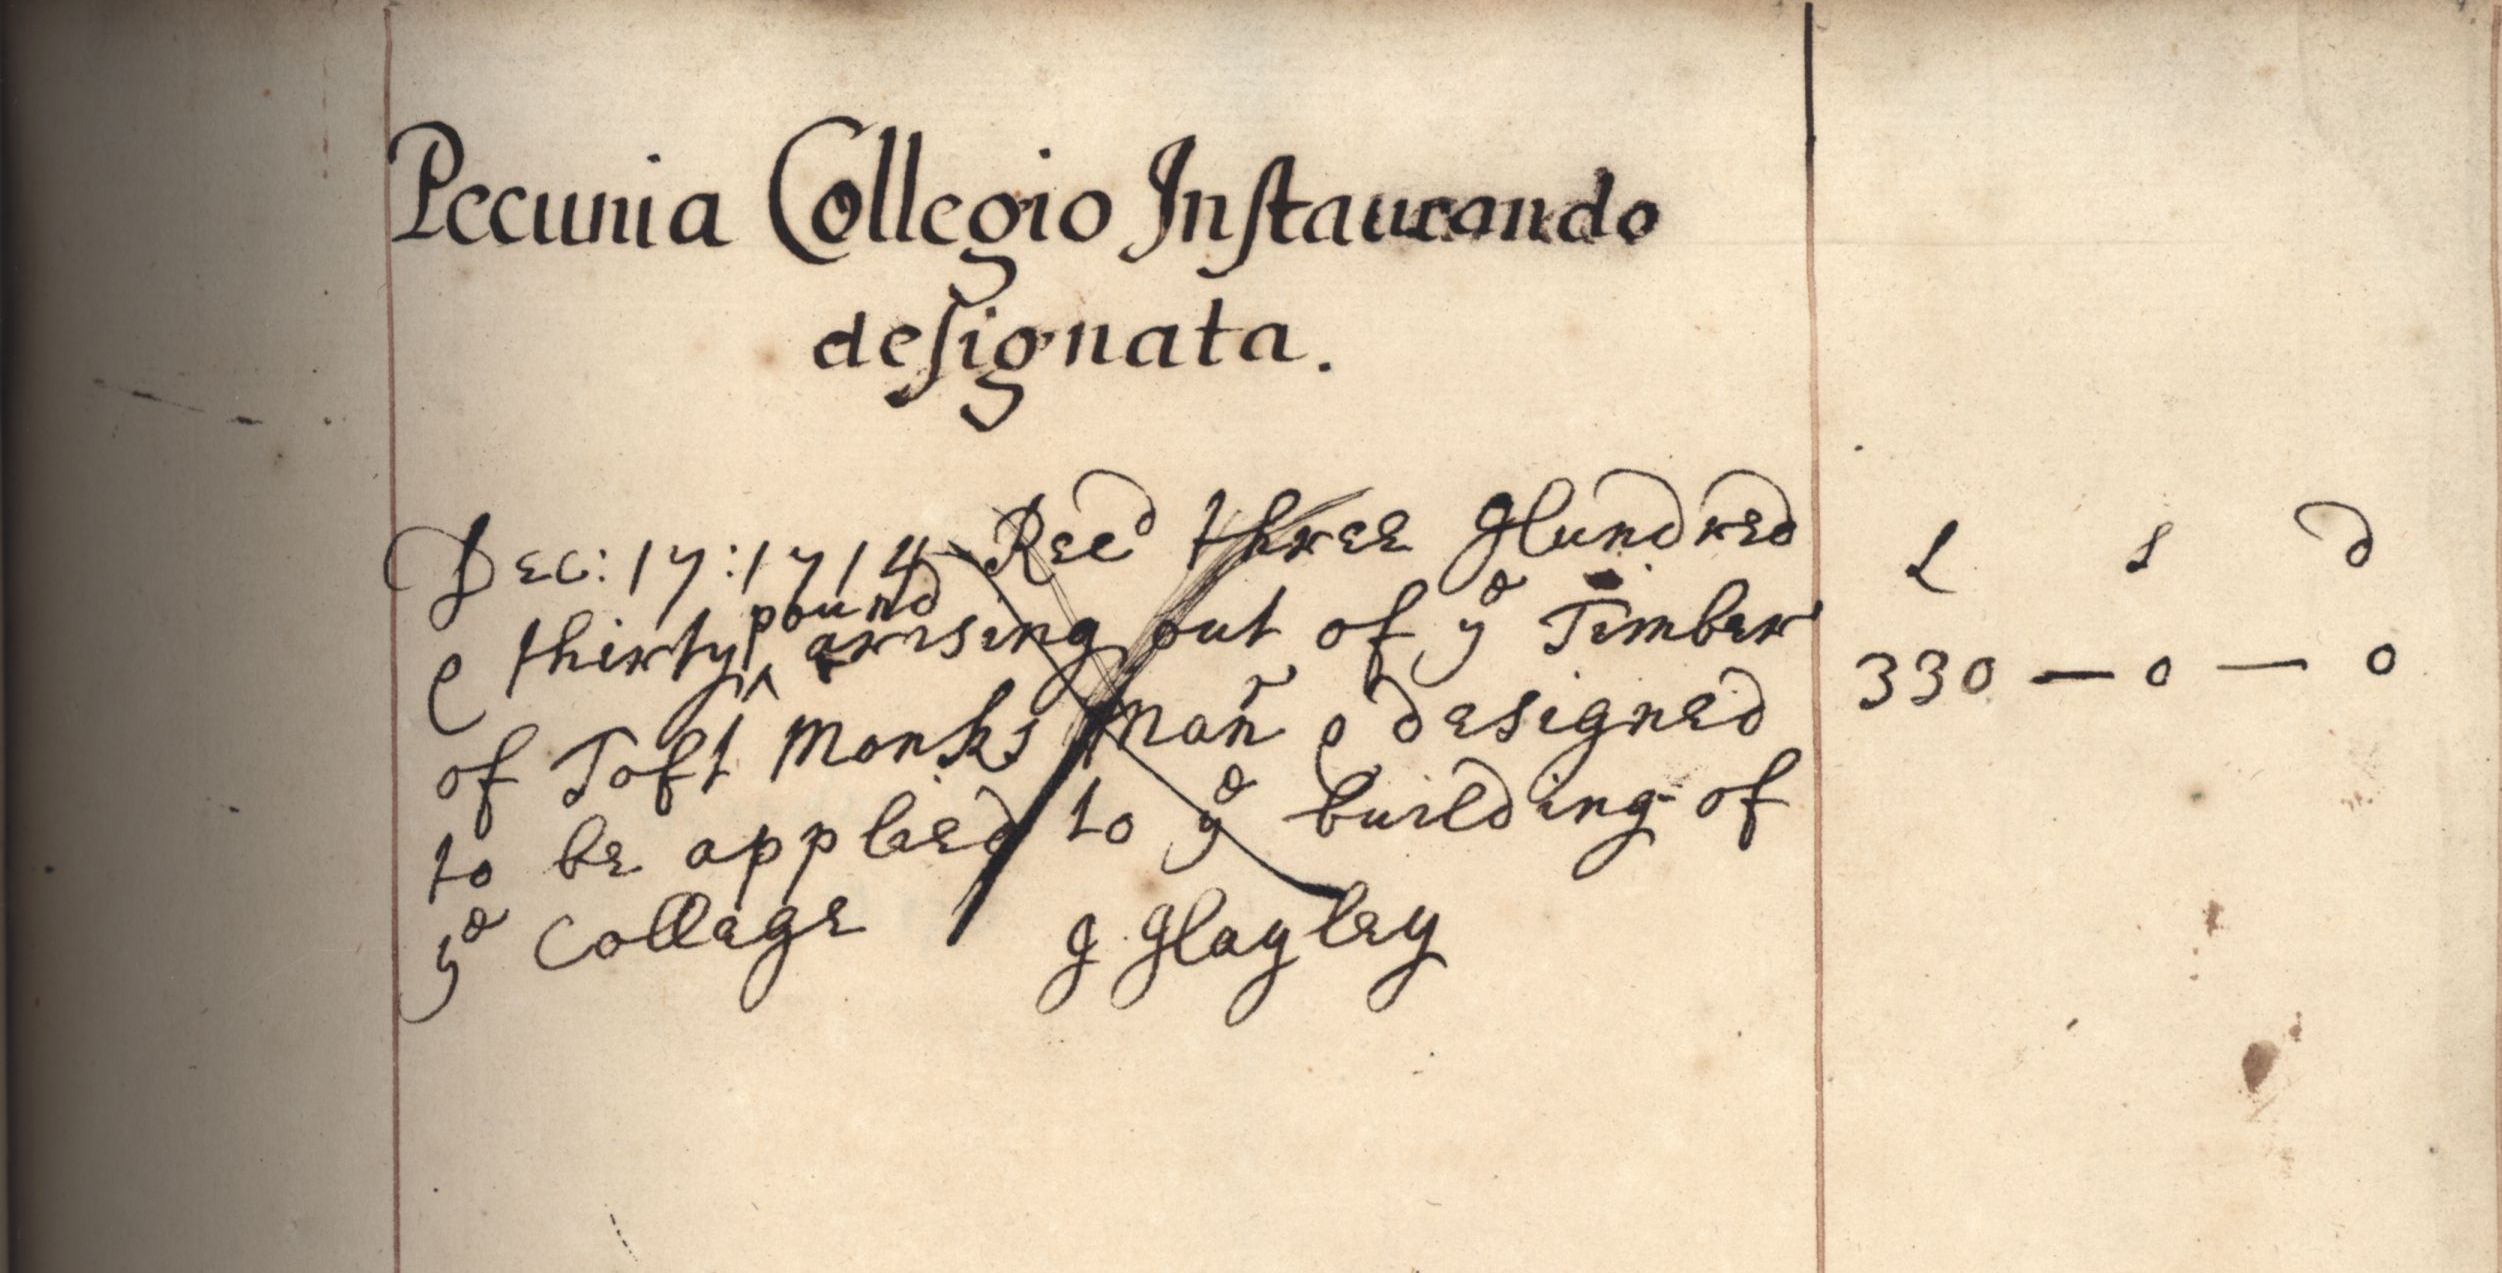 Record of the creation of a Building-Fund, following the sale of timber from Toft Monks. [KCAR/4/1/1/42, Mundum 1713-14, Pecunia Collegio Instaurando designate]